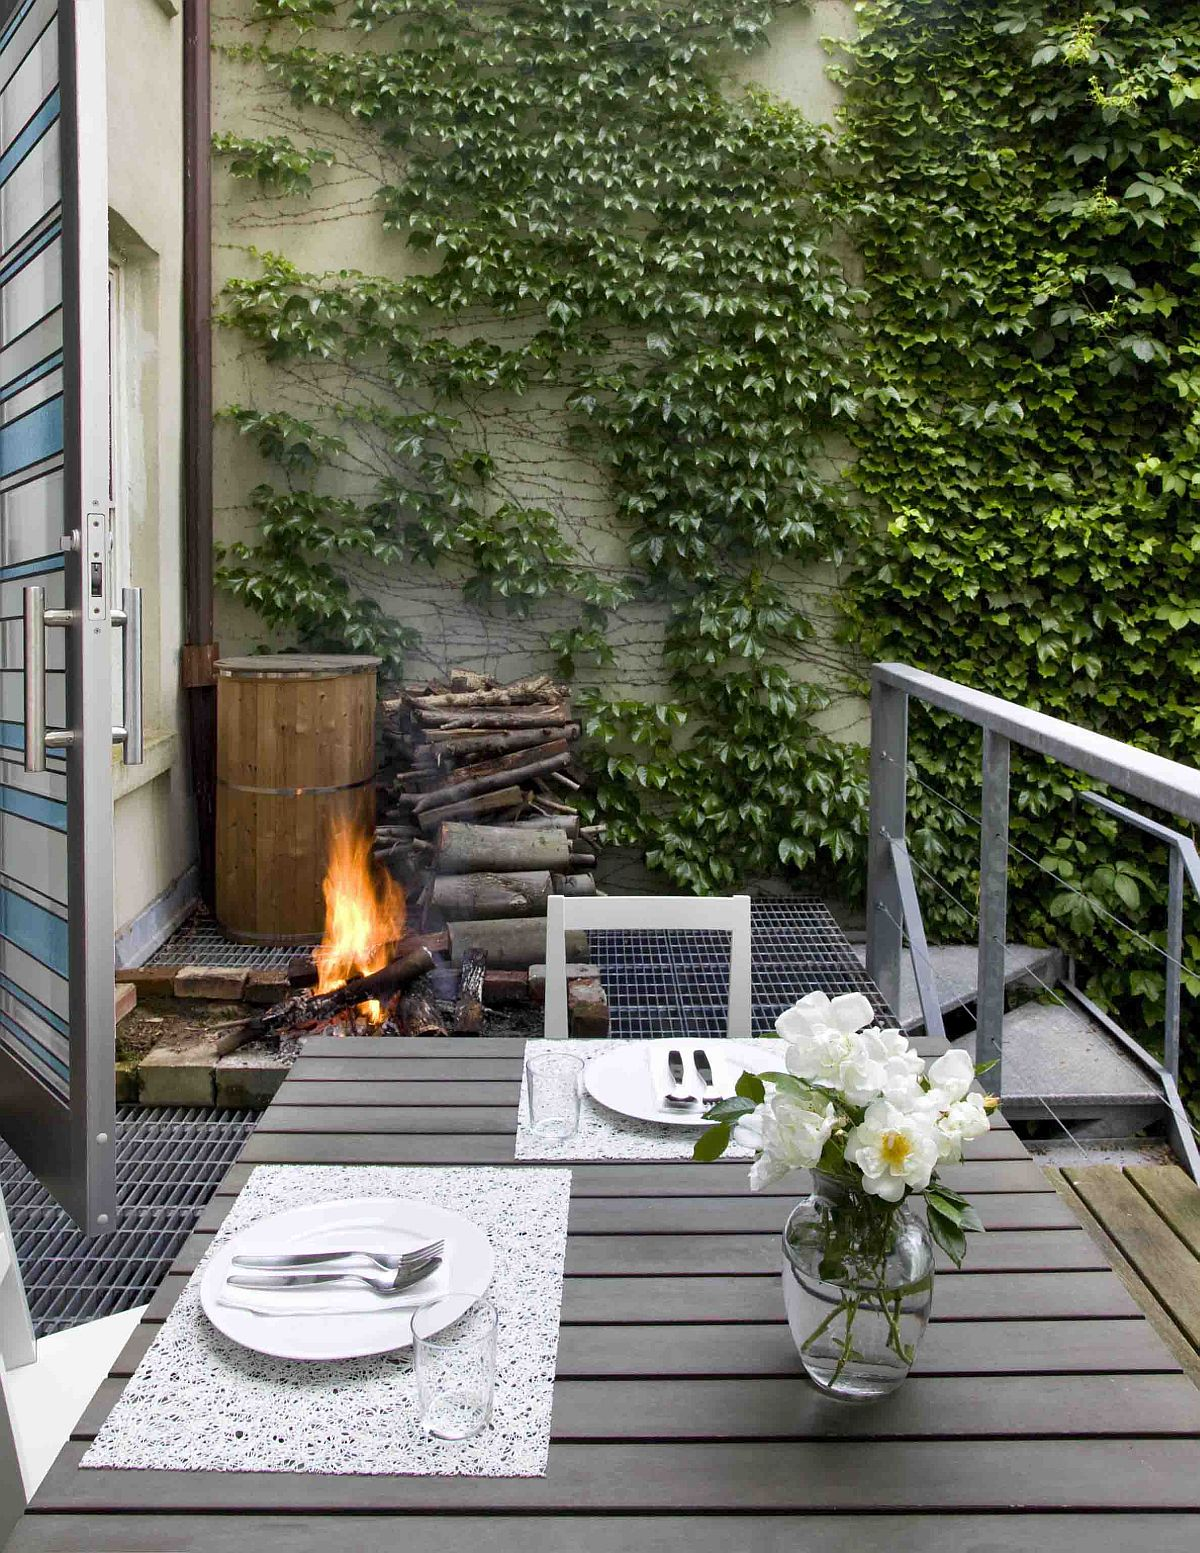 Cozy and comfortable small contemporary deck with a fireplace